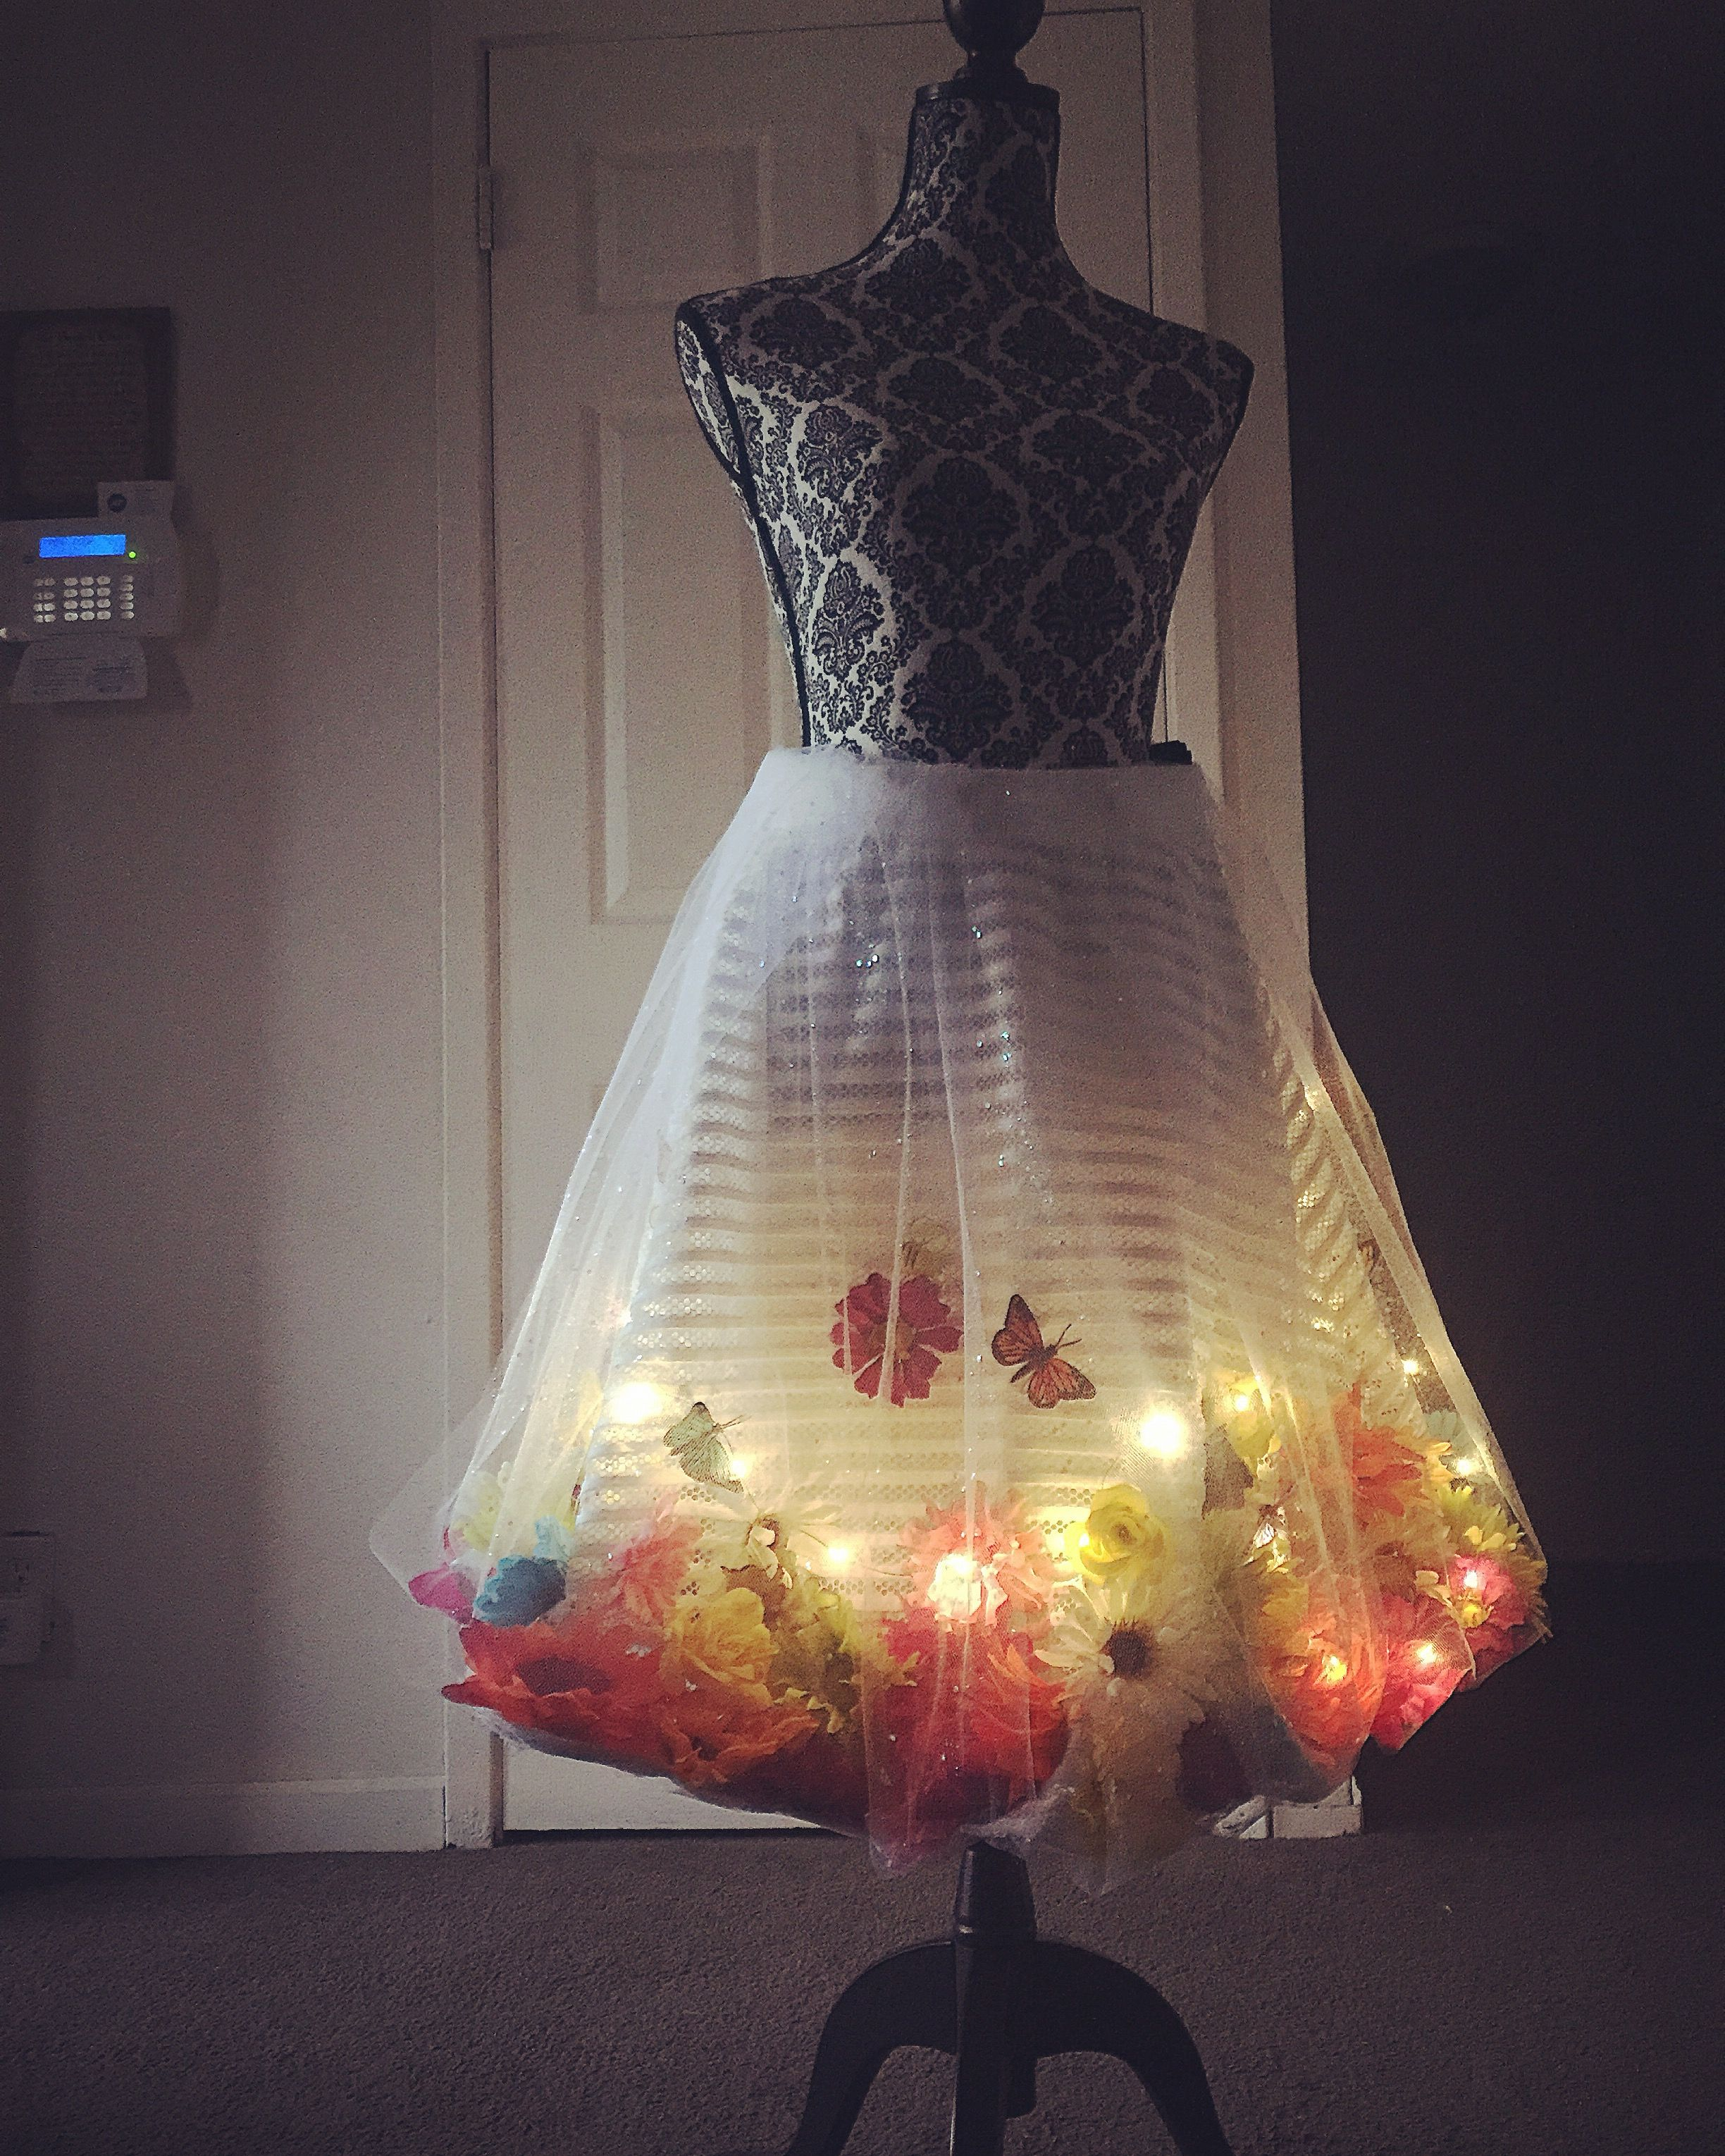 Fairytale summer skirt made by me 😊